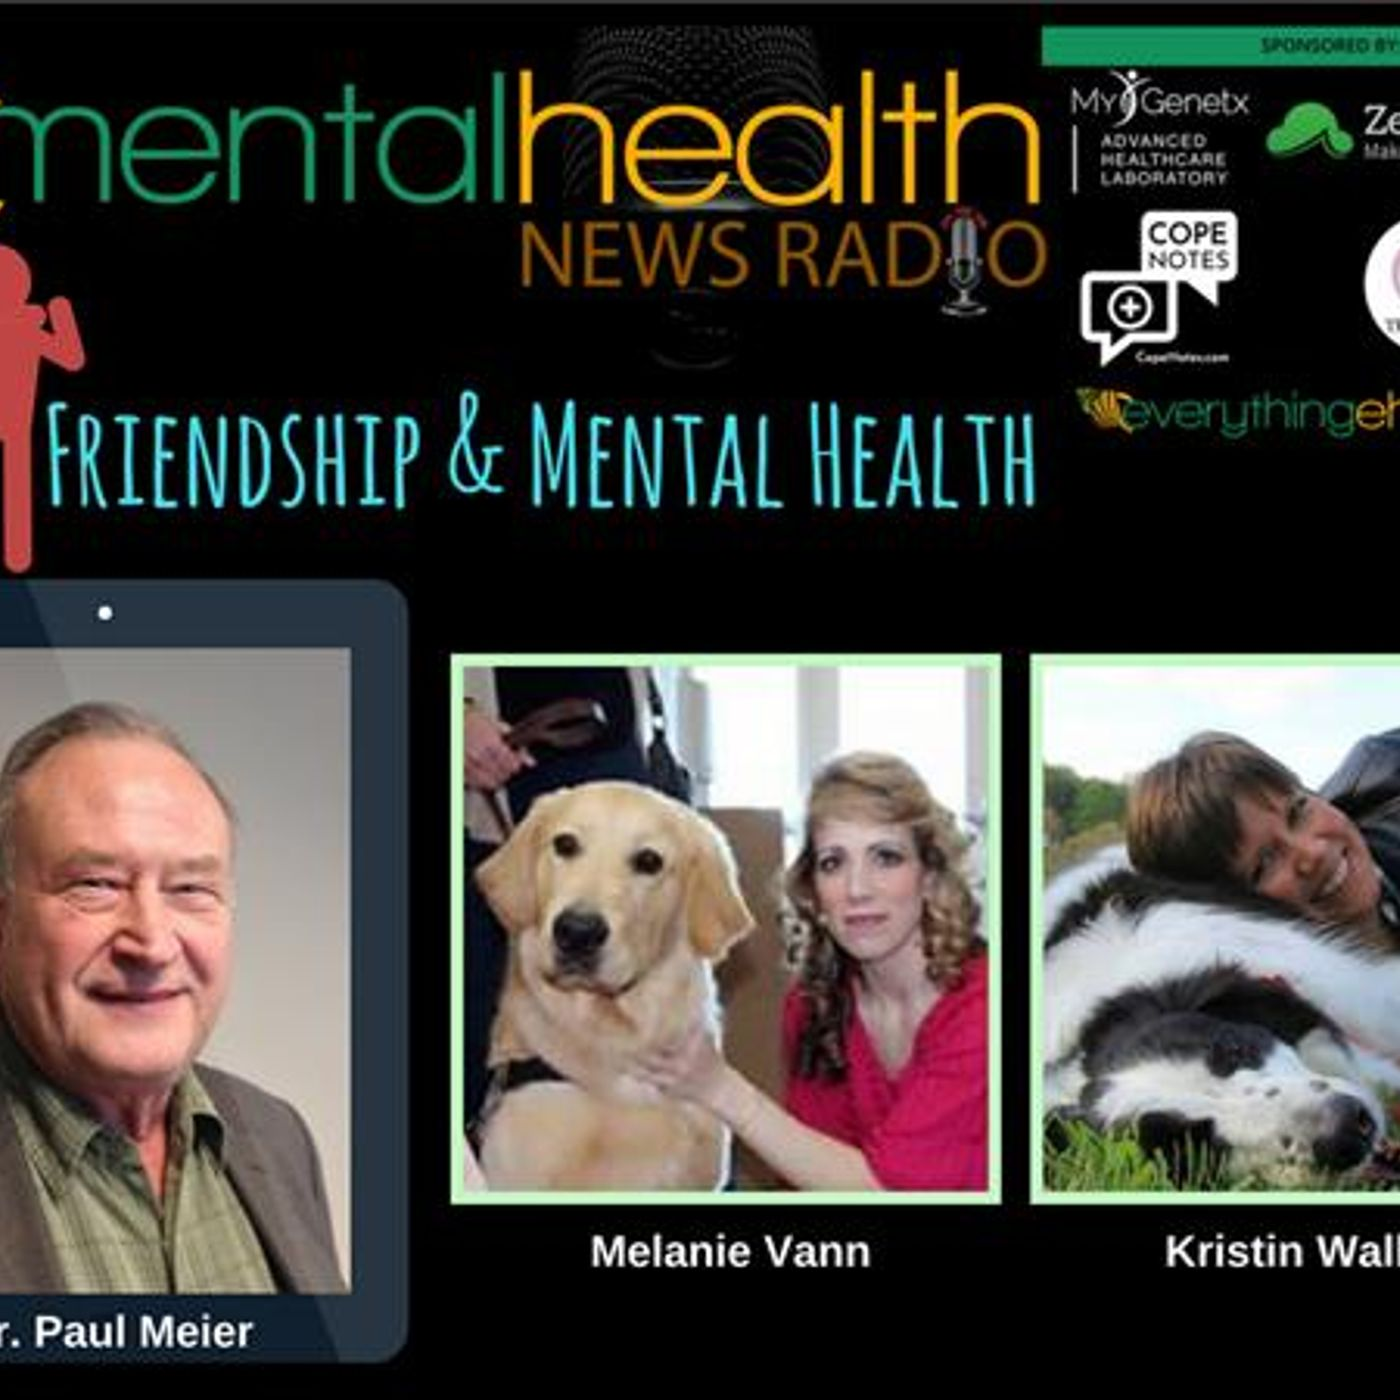 Mental Health News Radio - Round Table Discussions with Dr. Paul Meier: Friendship & Mental Health